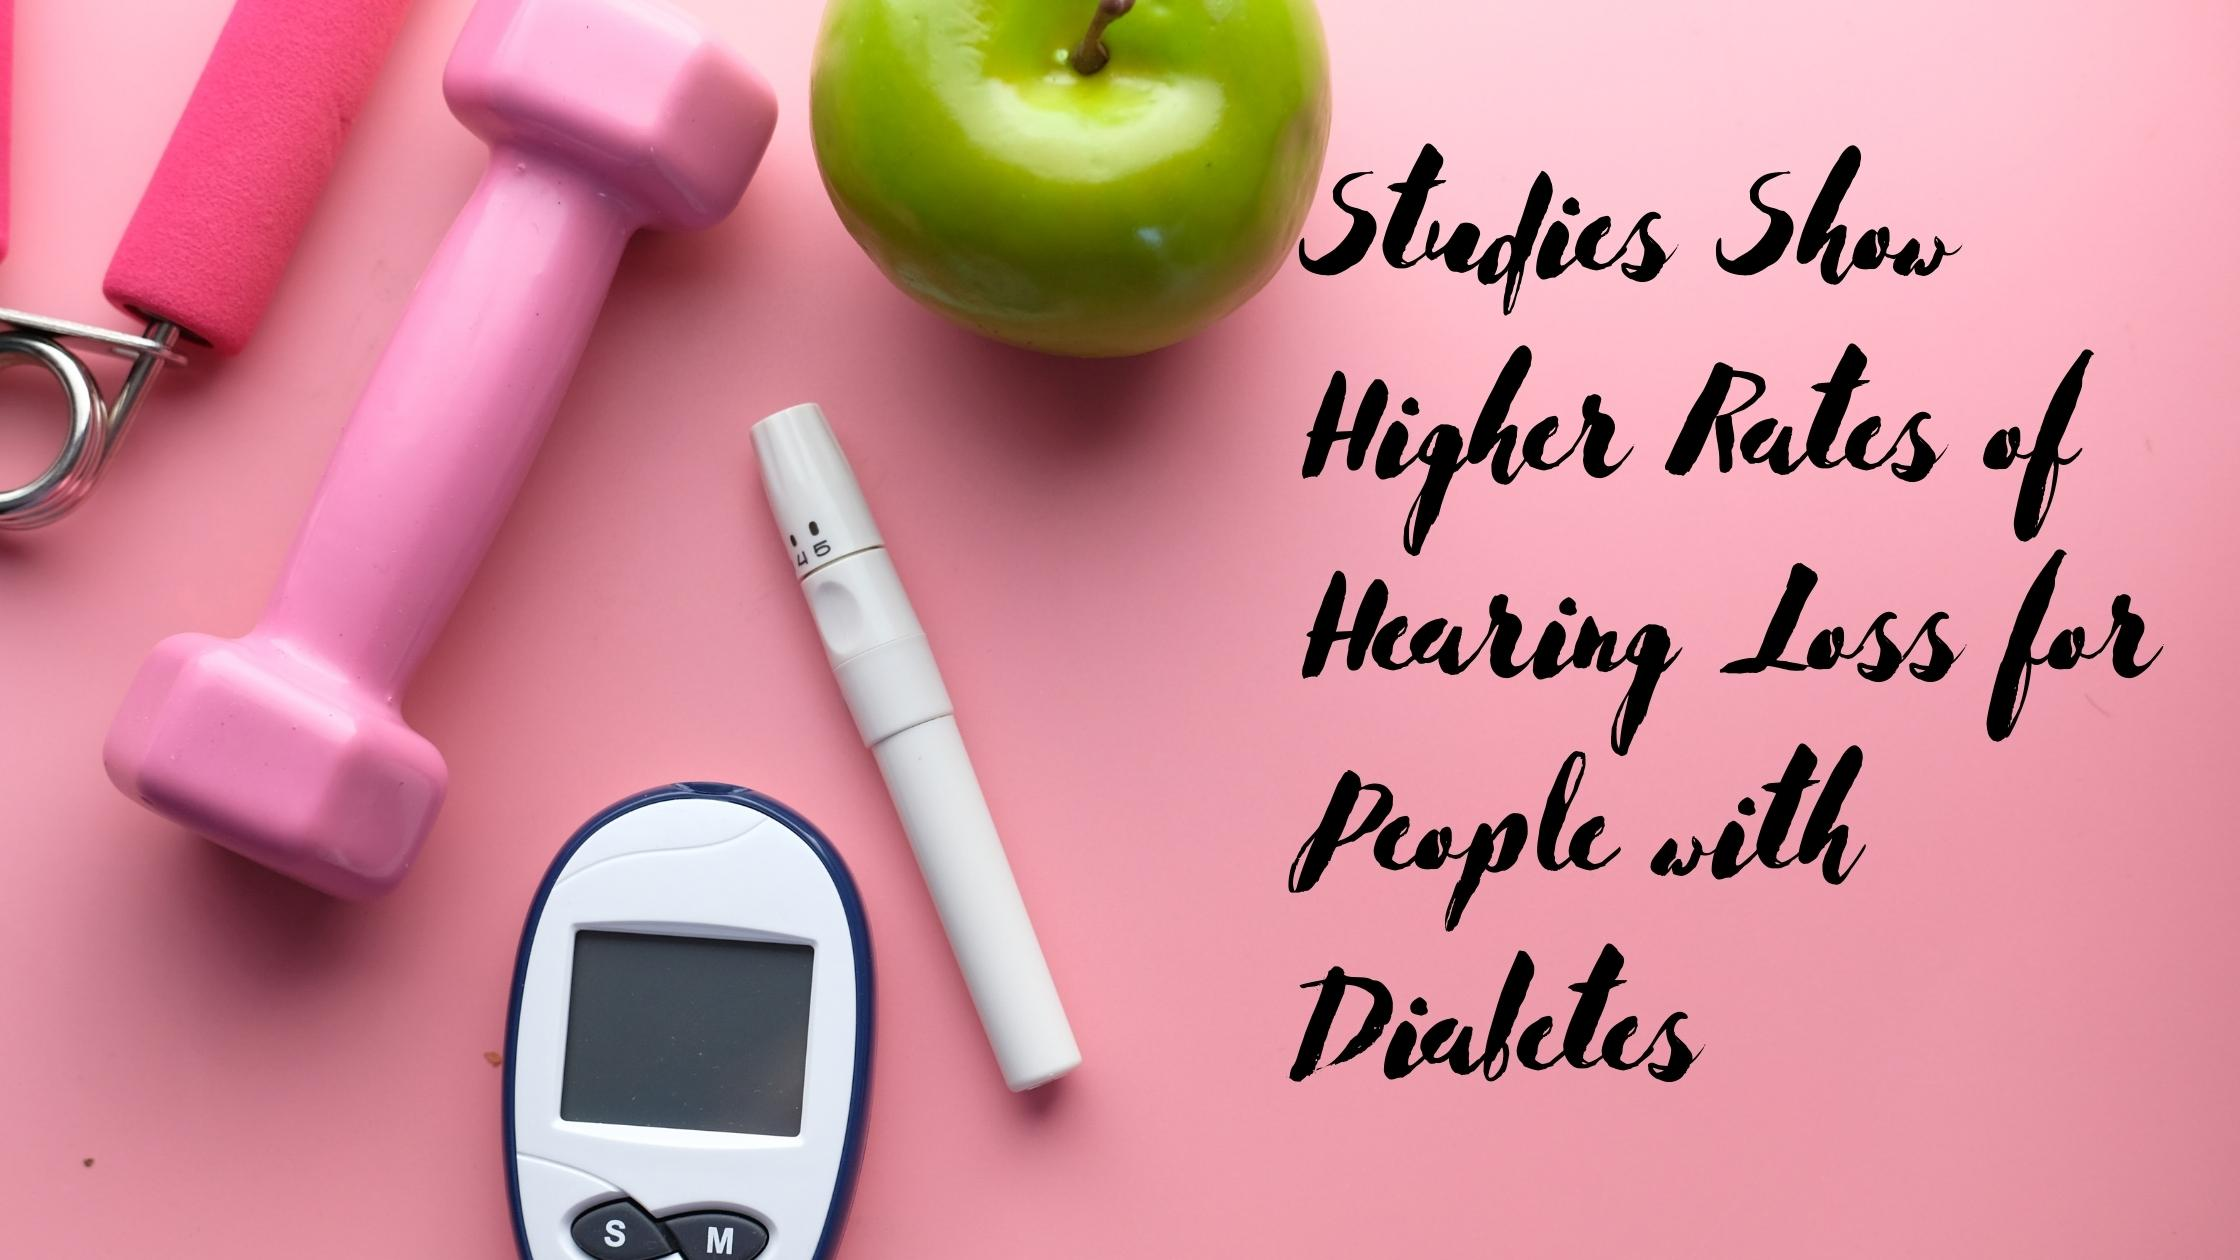 Studies Show Higher Rates of Hearing Loss for People with Diabetes